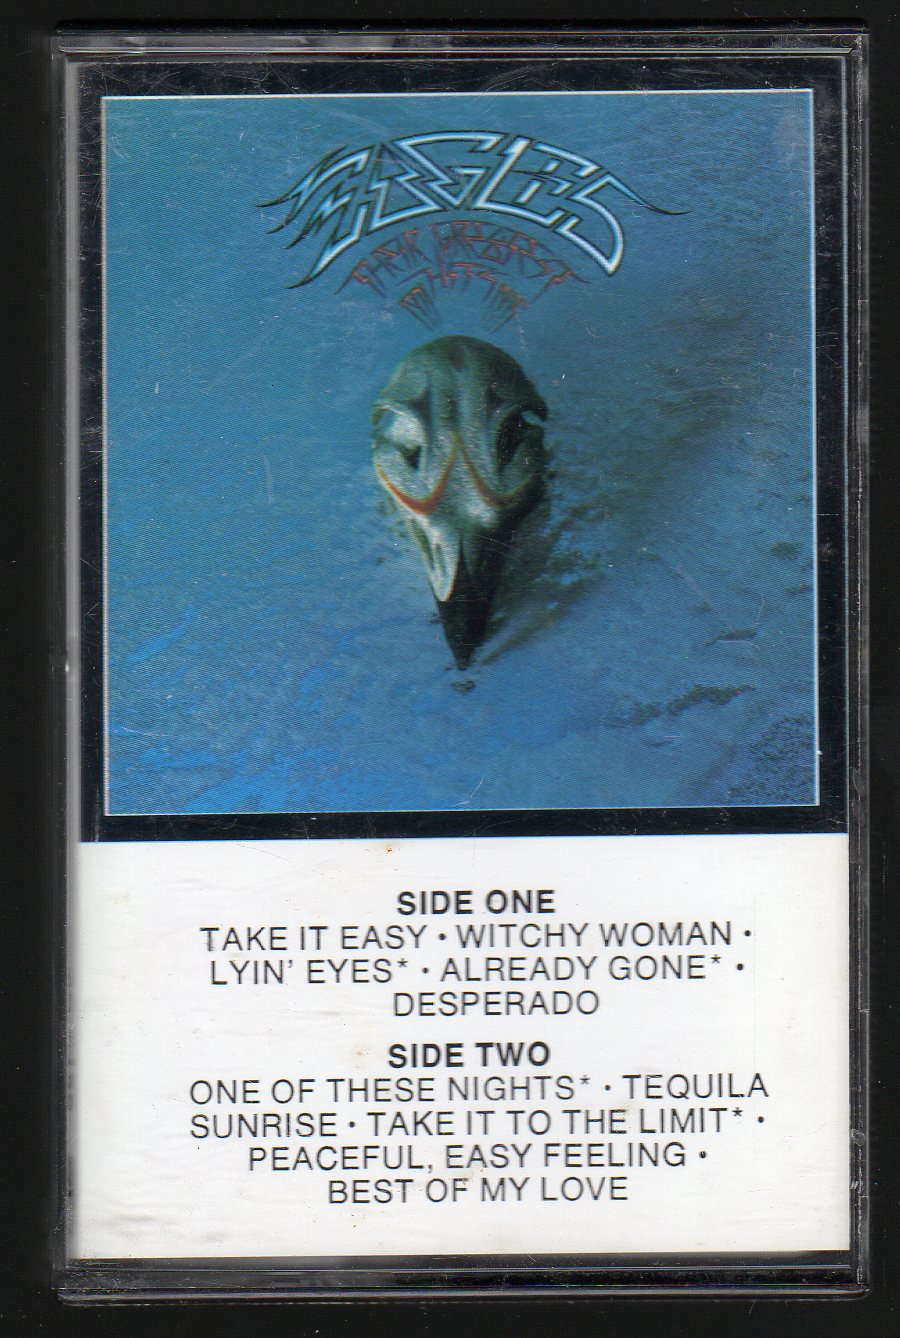 Eagles - Their Greatest Hits 1971-1975 SOLD Cassette Tape